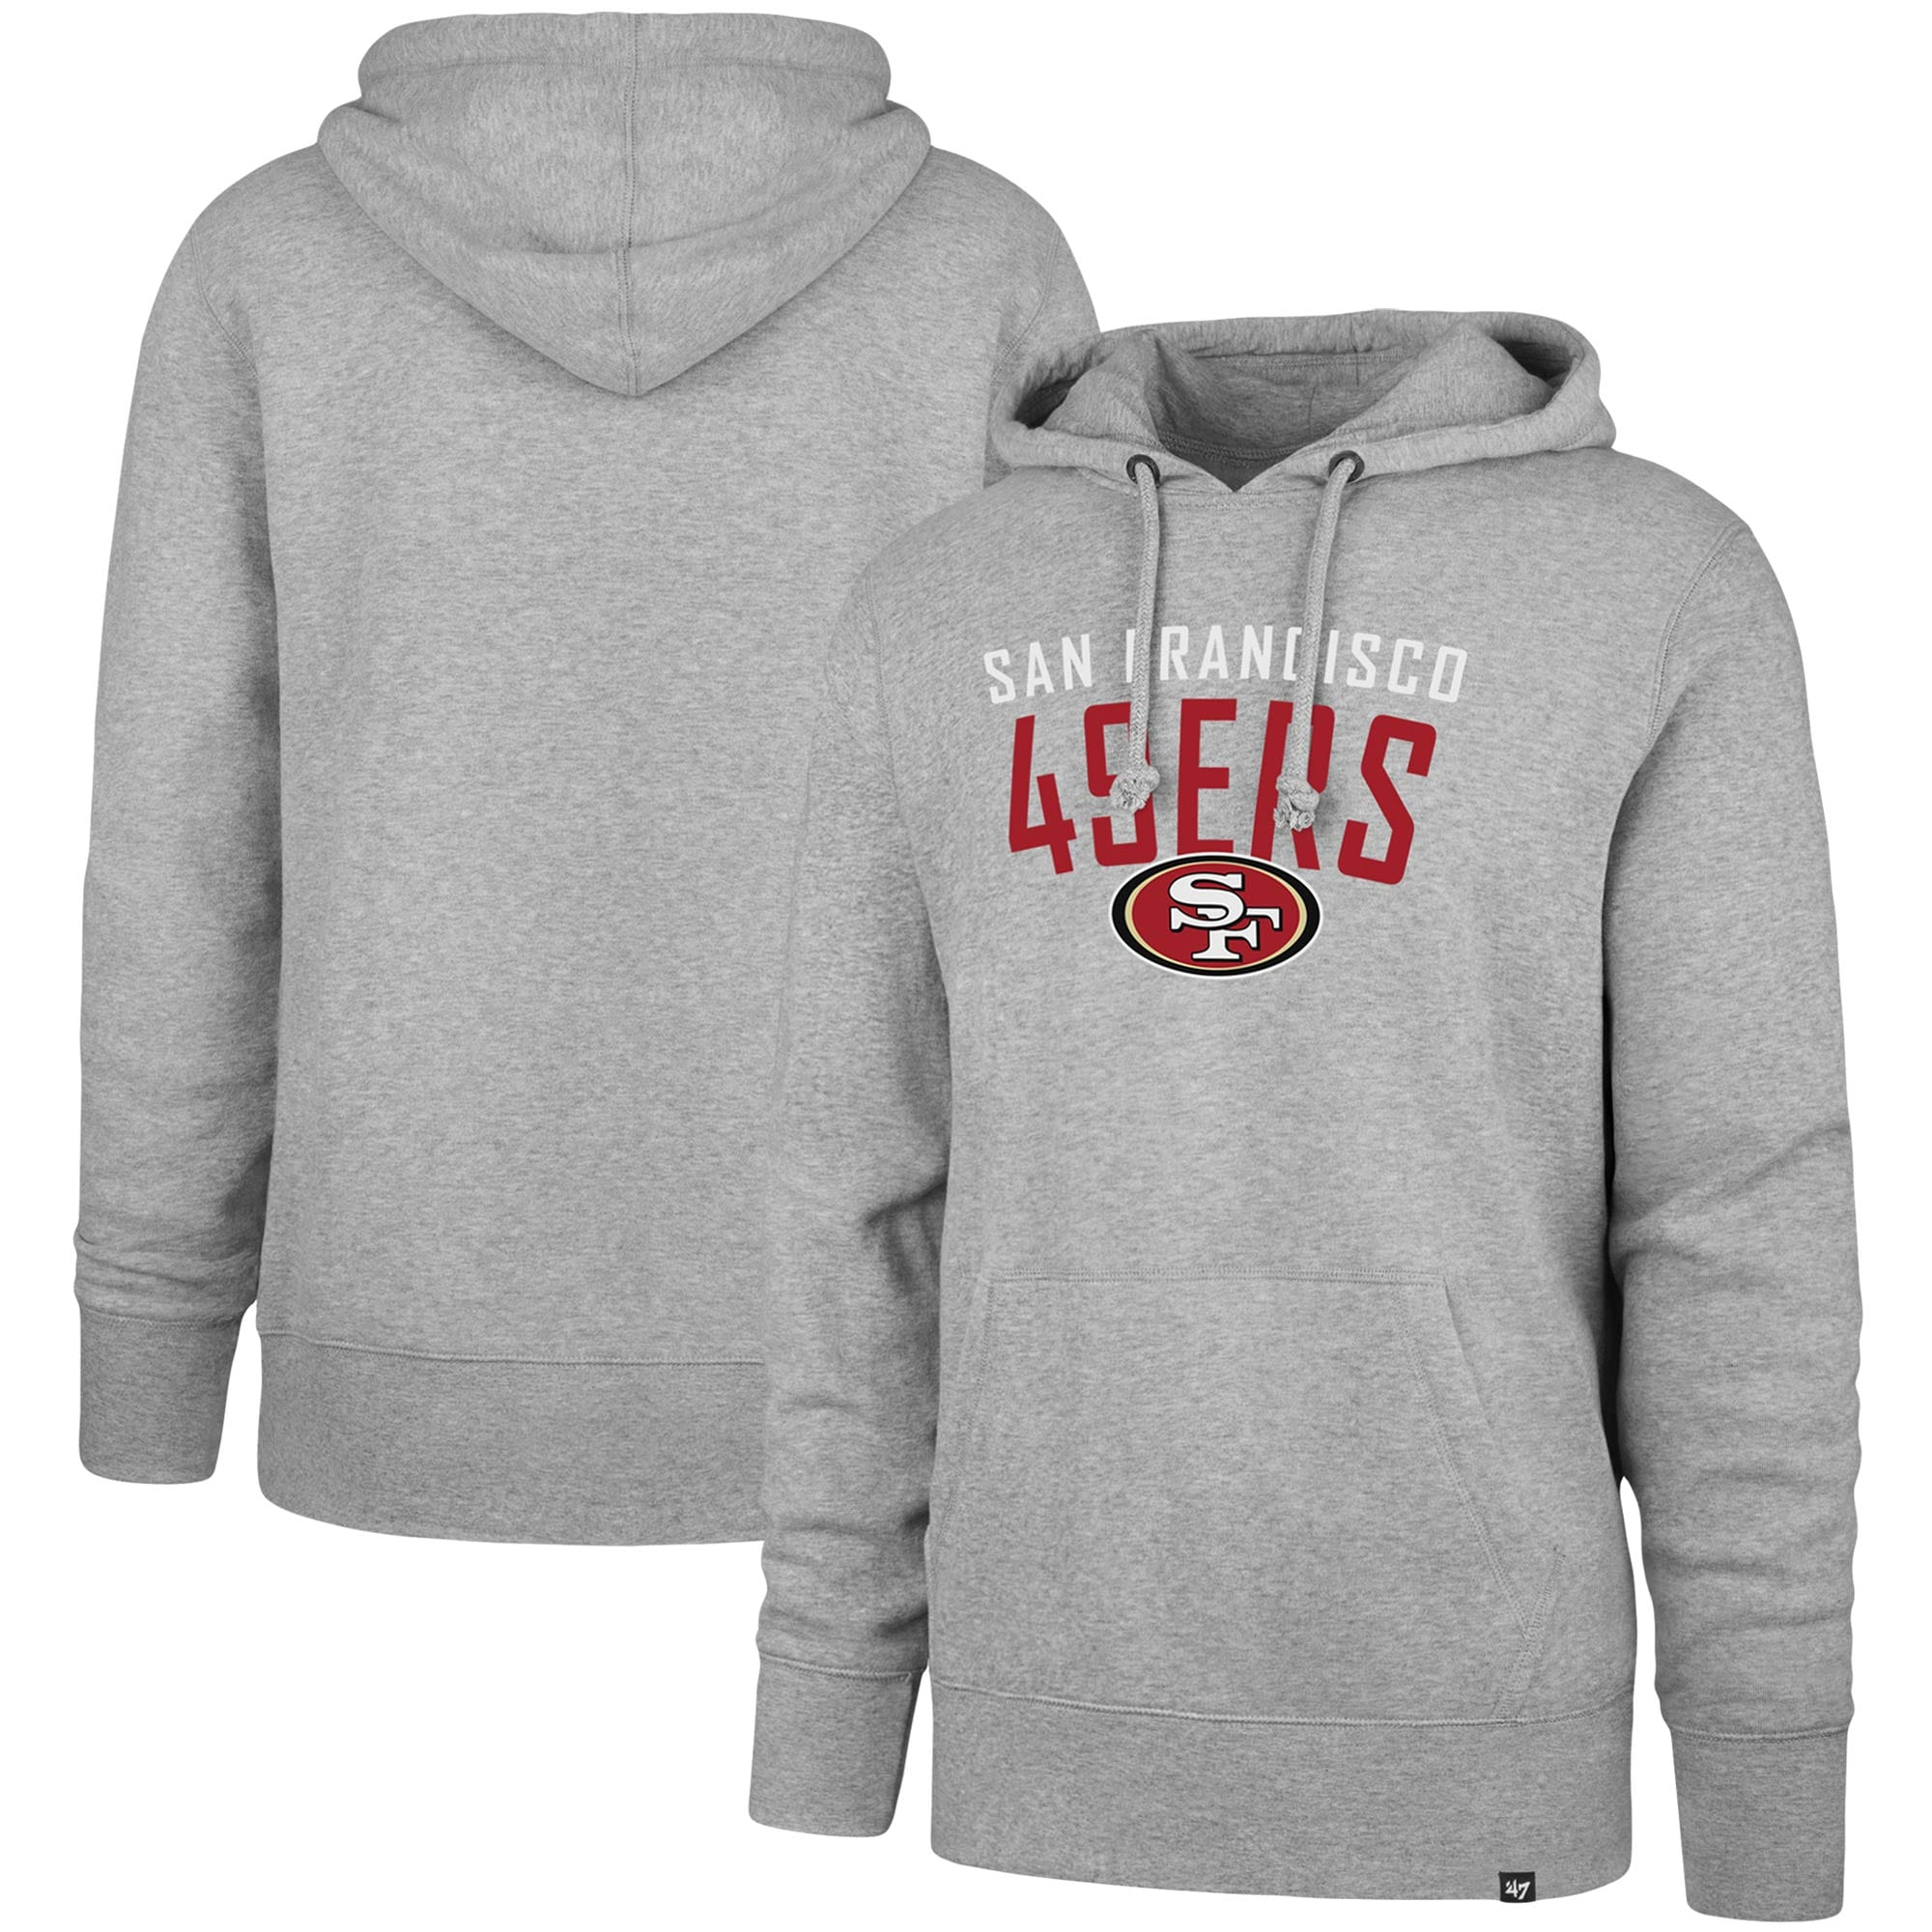 San Francisco 49ers '47 Outrush Headline Pullover Hoodie - Heathered Gray